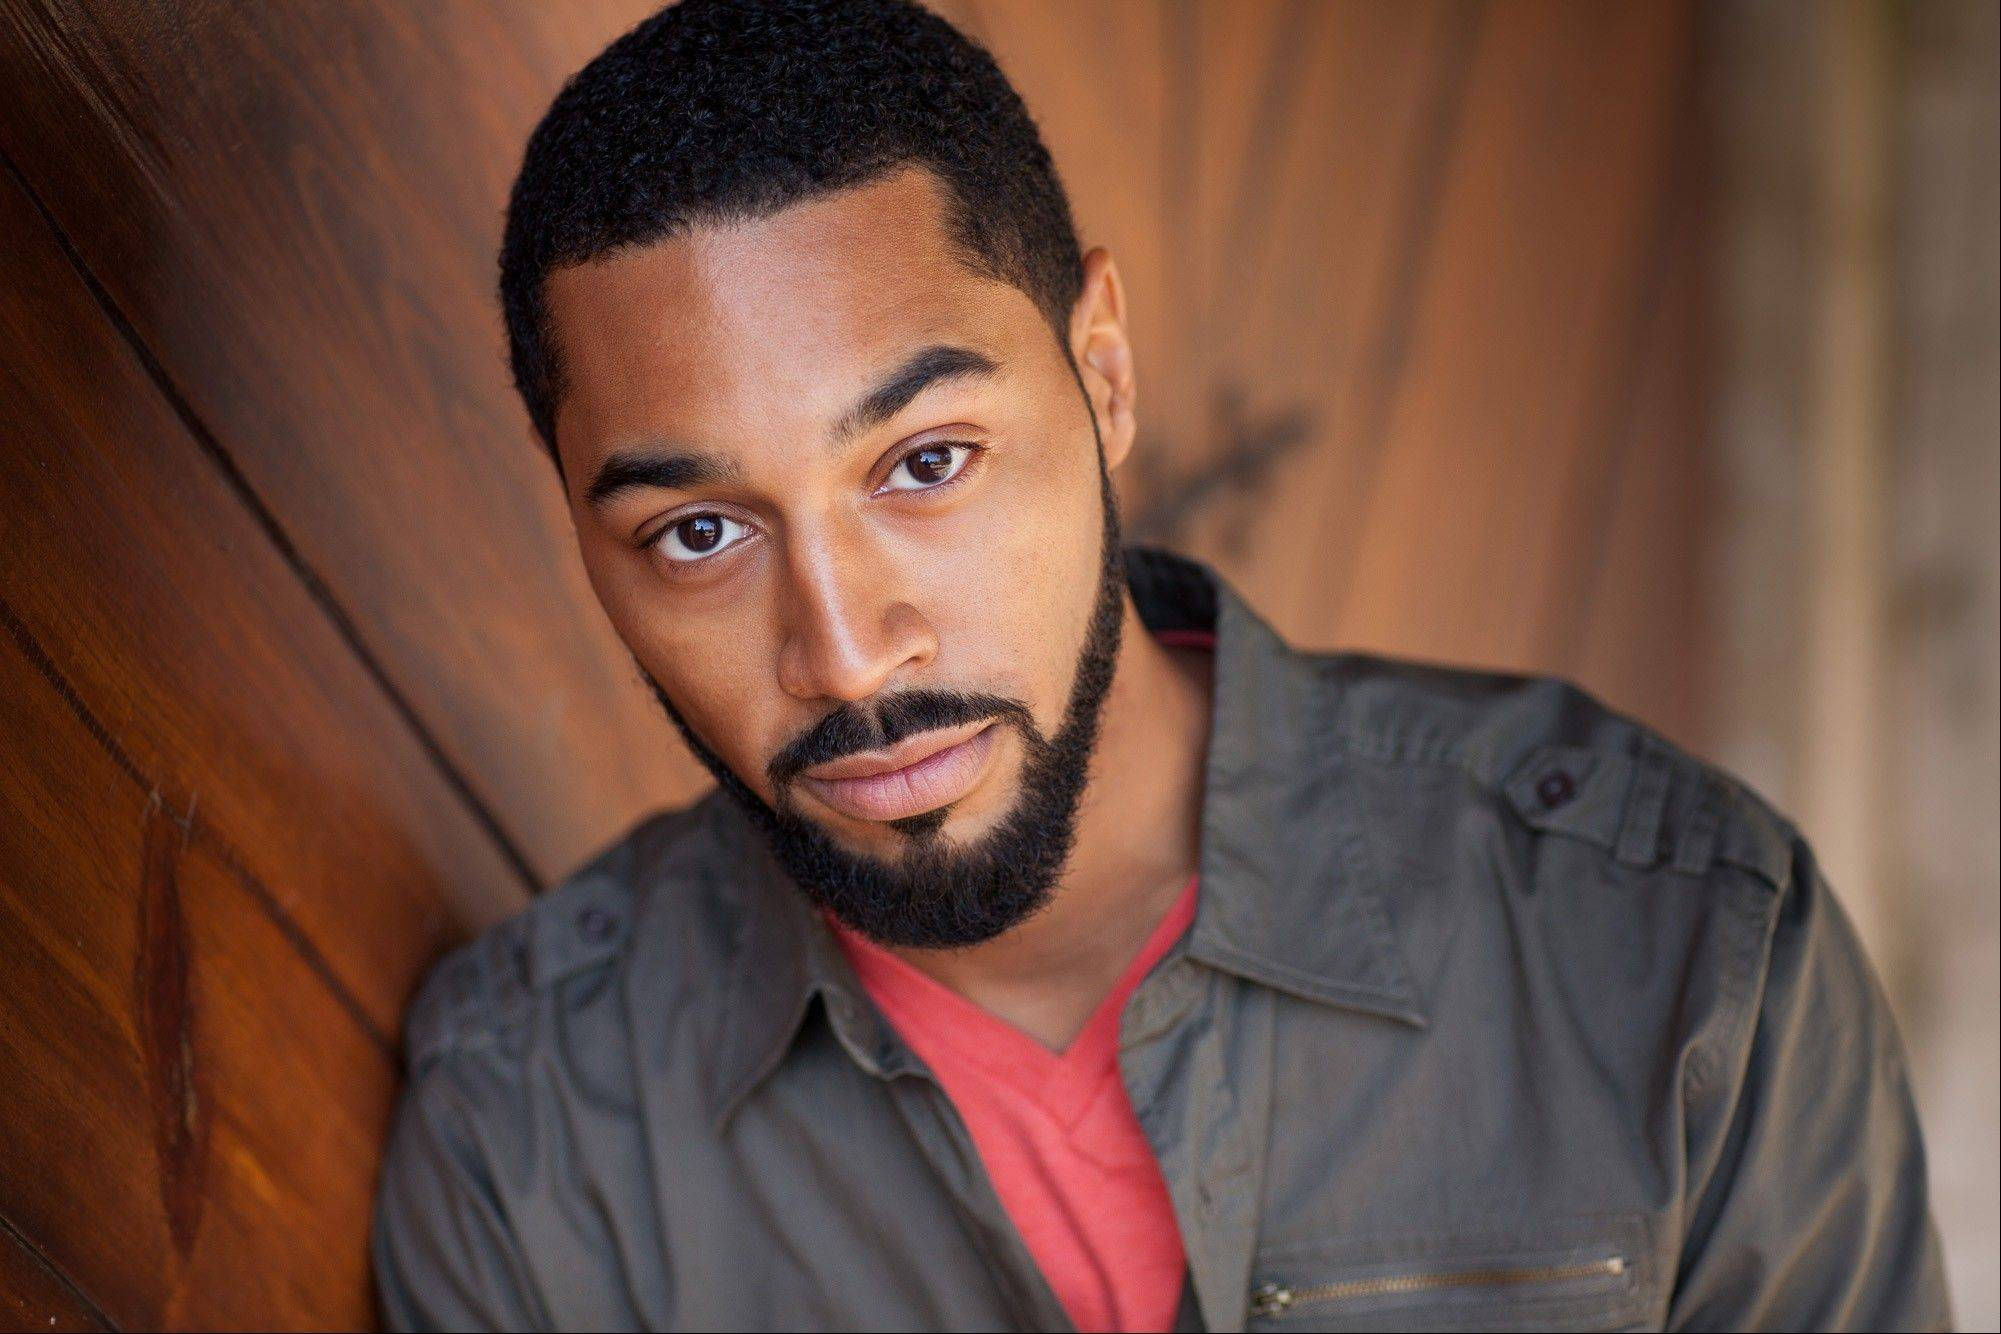 Comedian Tone Bell is set to perform at Zanies Comedy Club in MB Financial Park in Rosmeont.